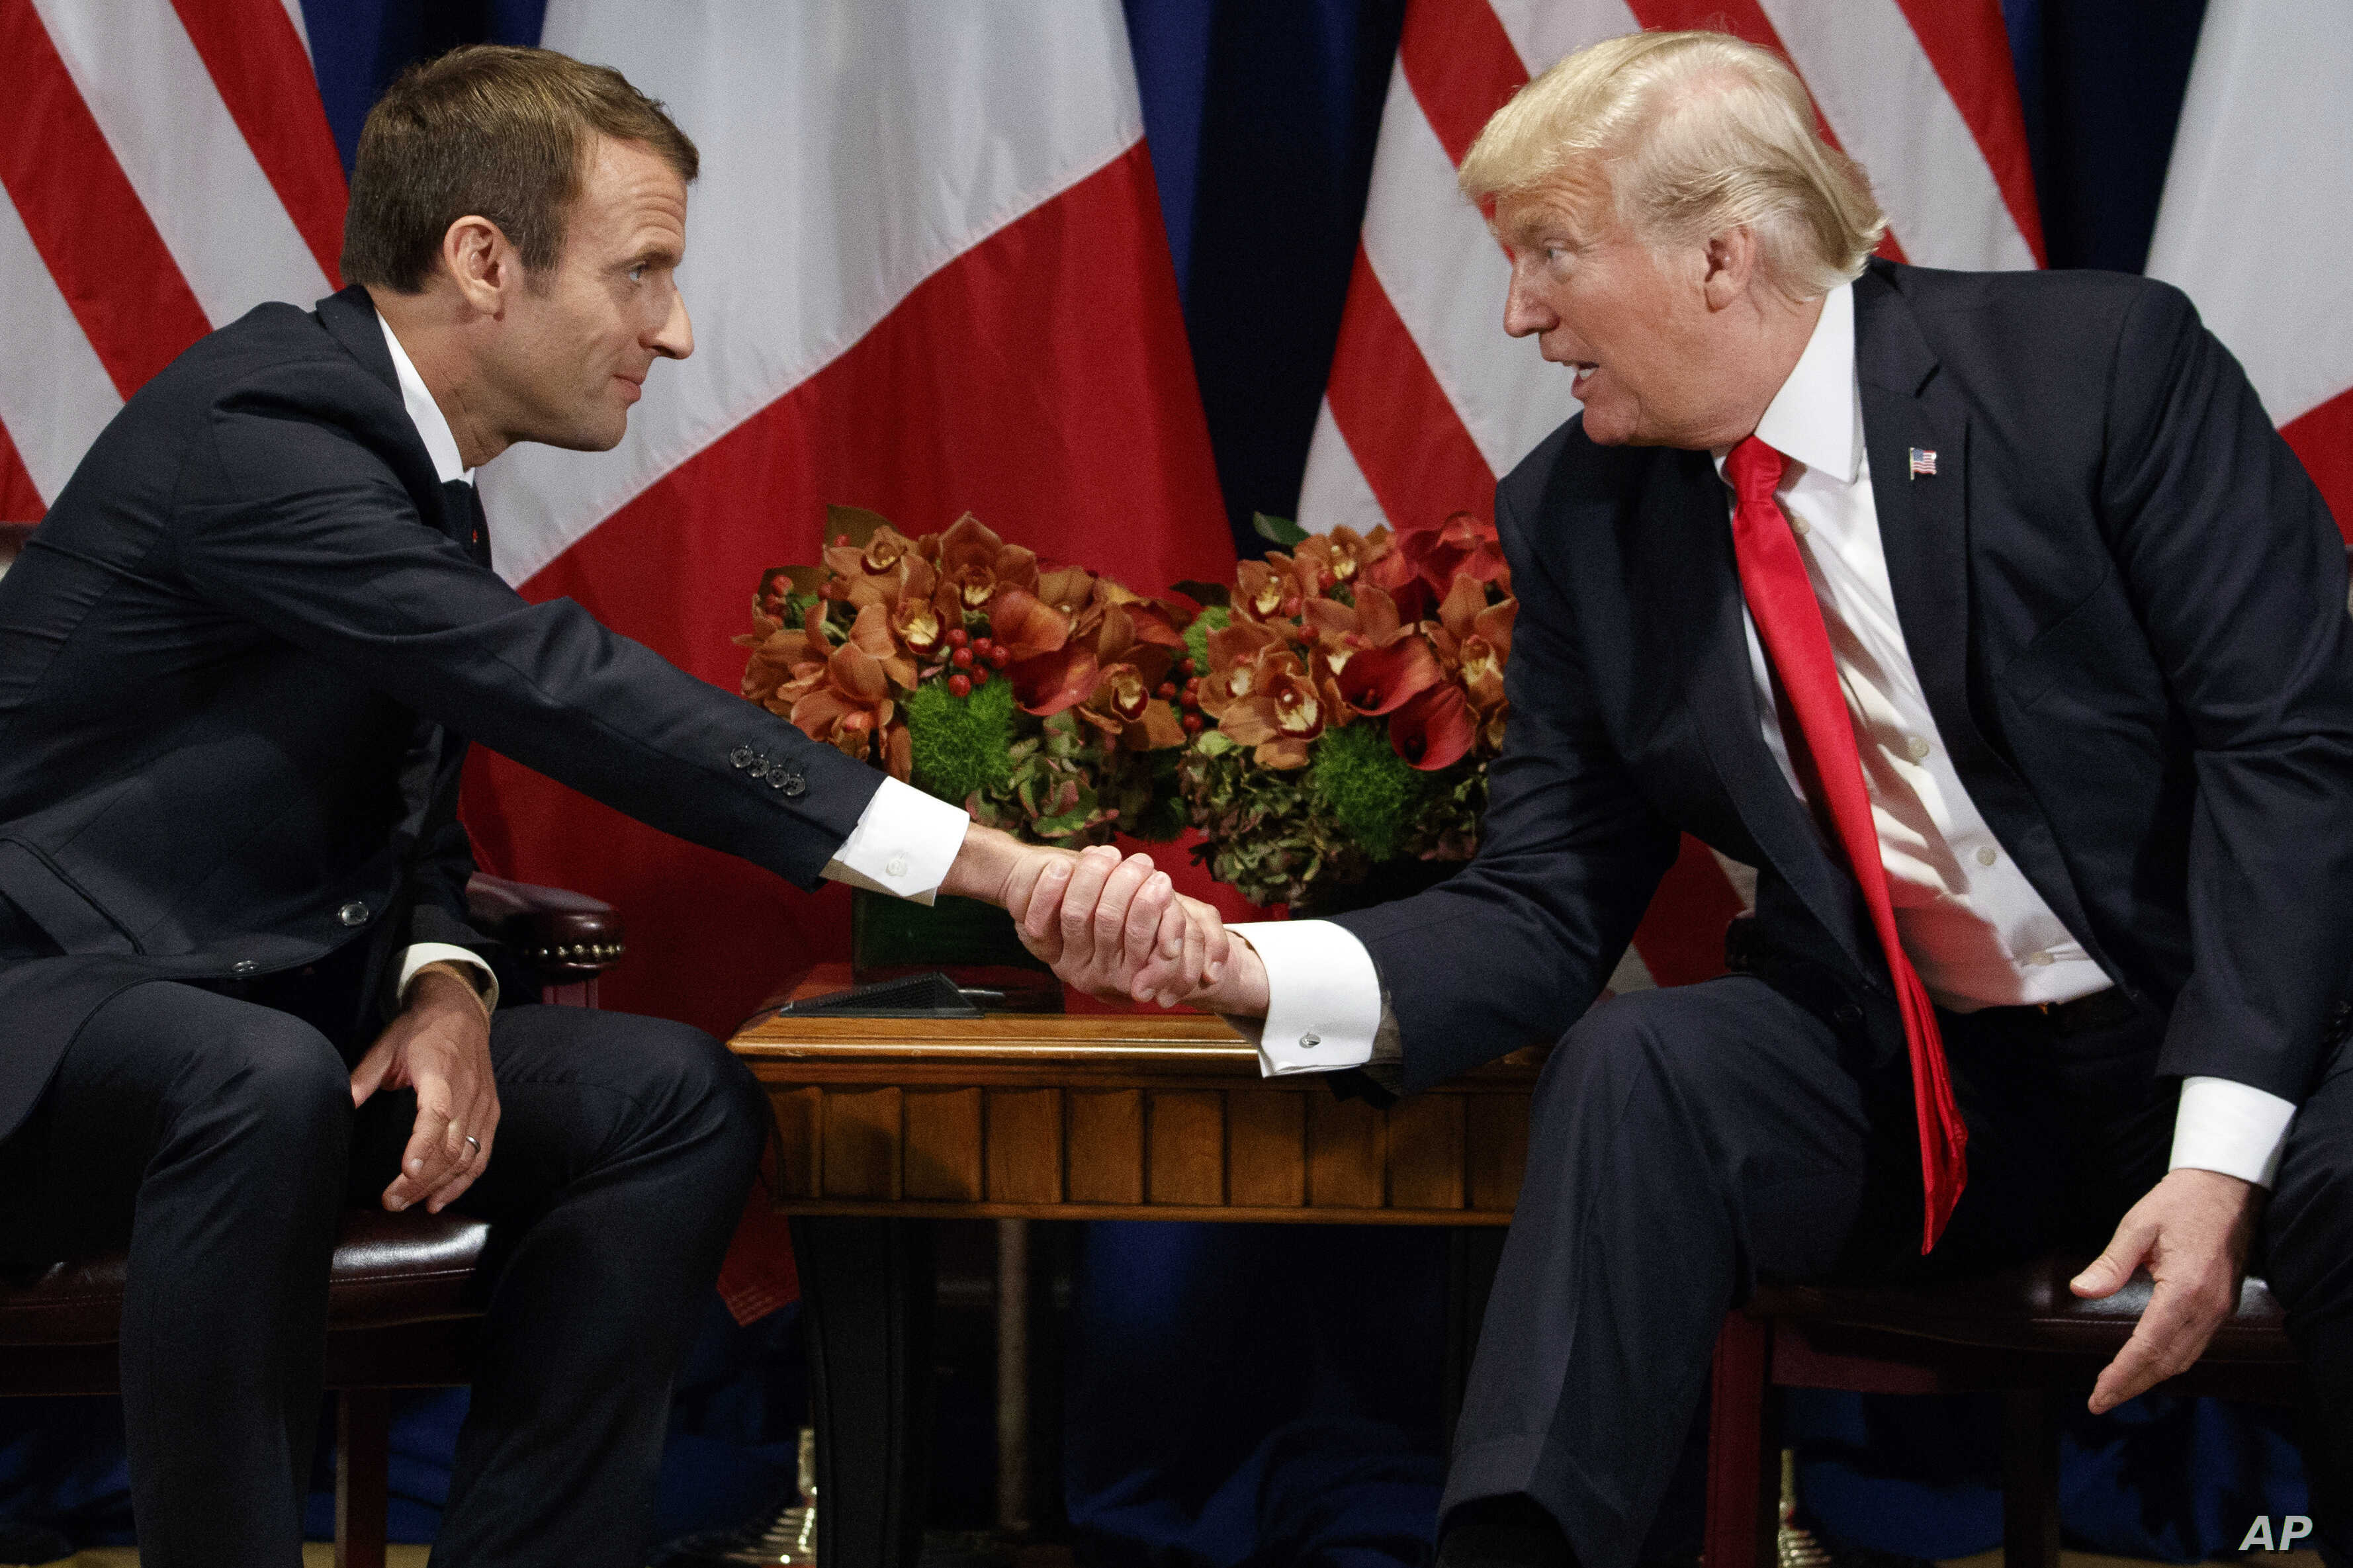 President Donald Trump shakes hands with French President Emmanuel Macron during a meeting at the Palace Hotel, Sept. 18, 2017, in New York.